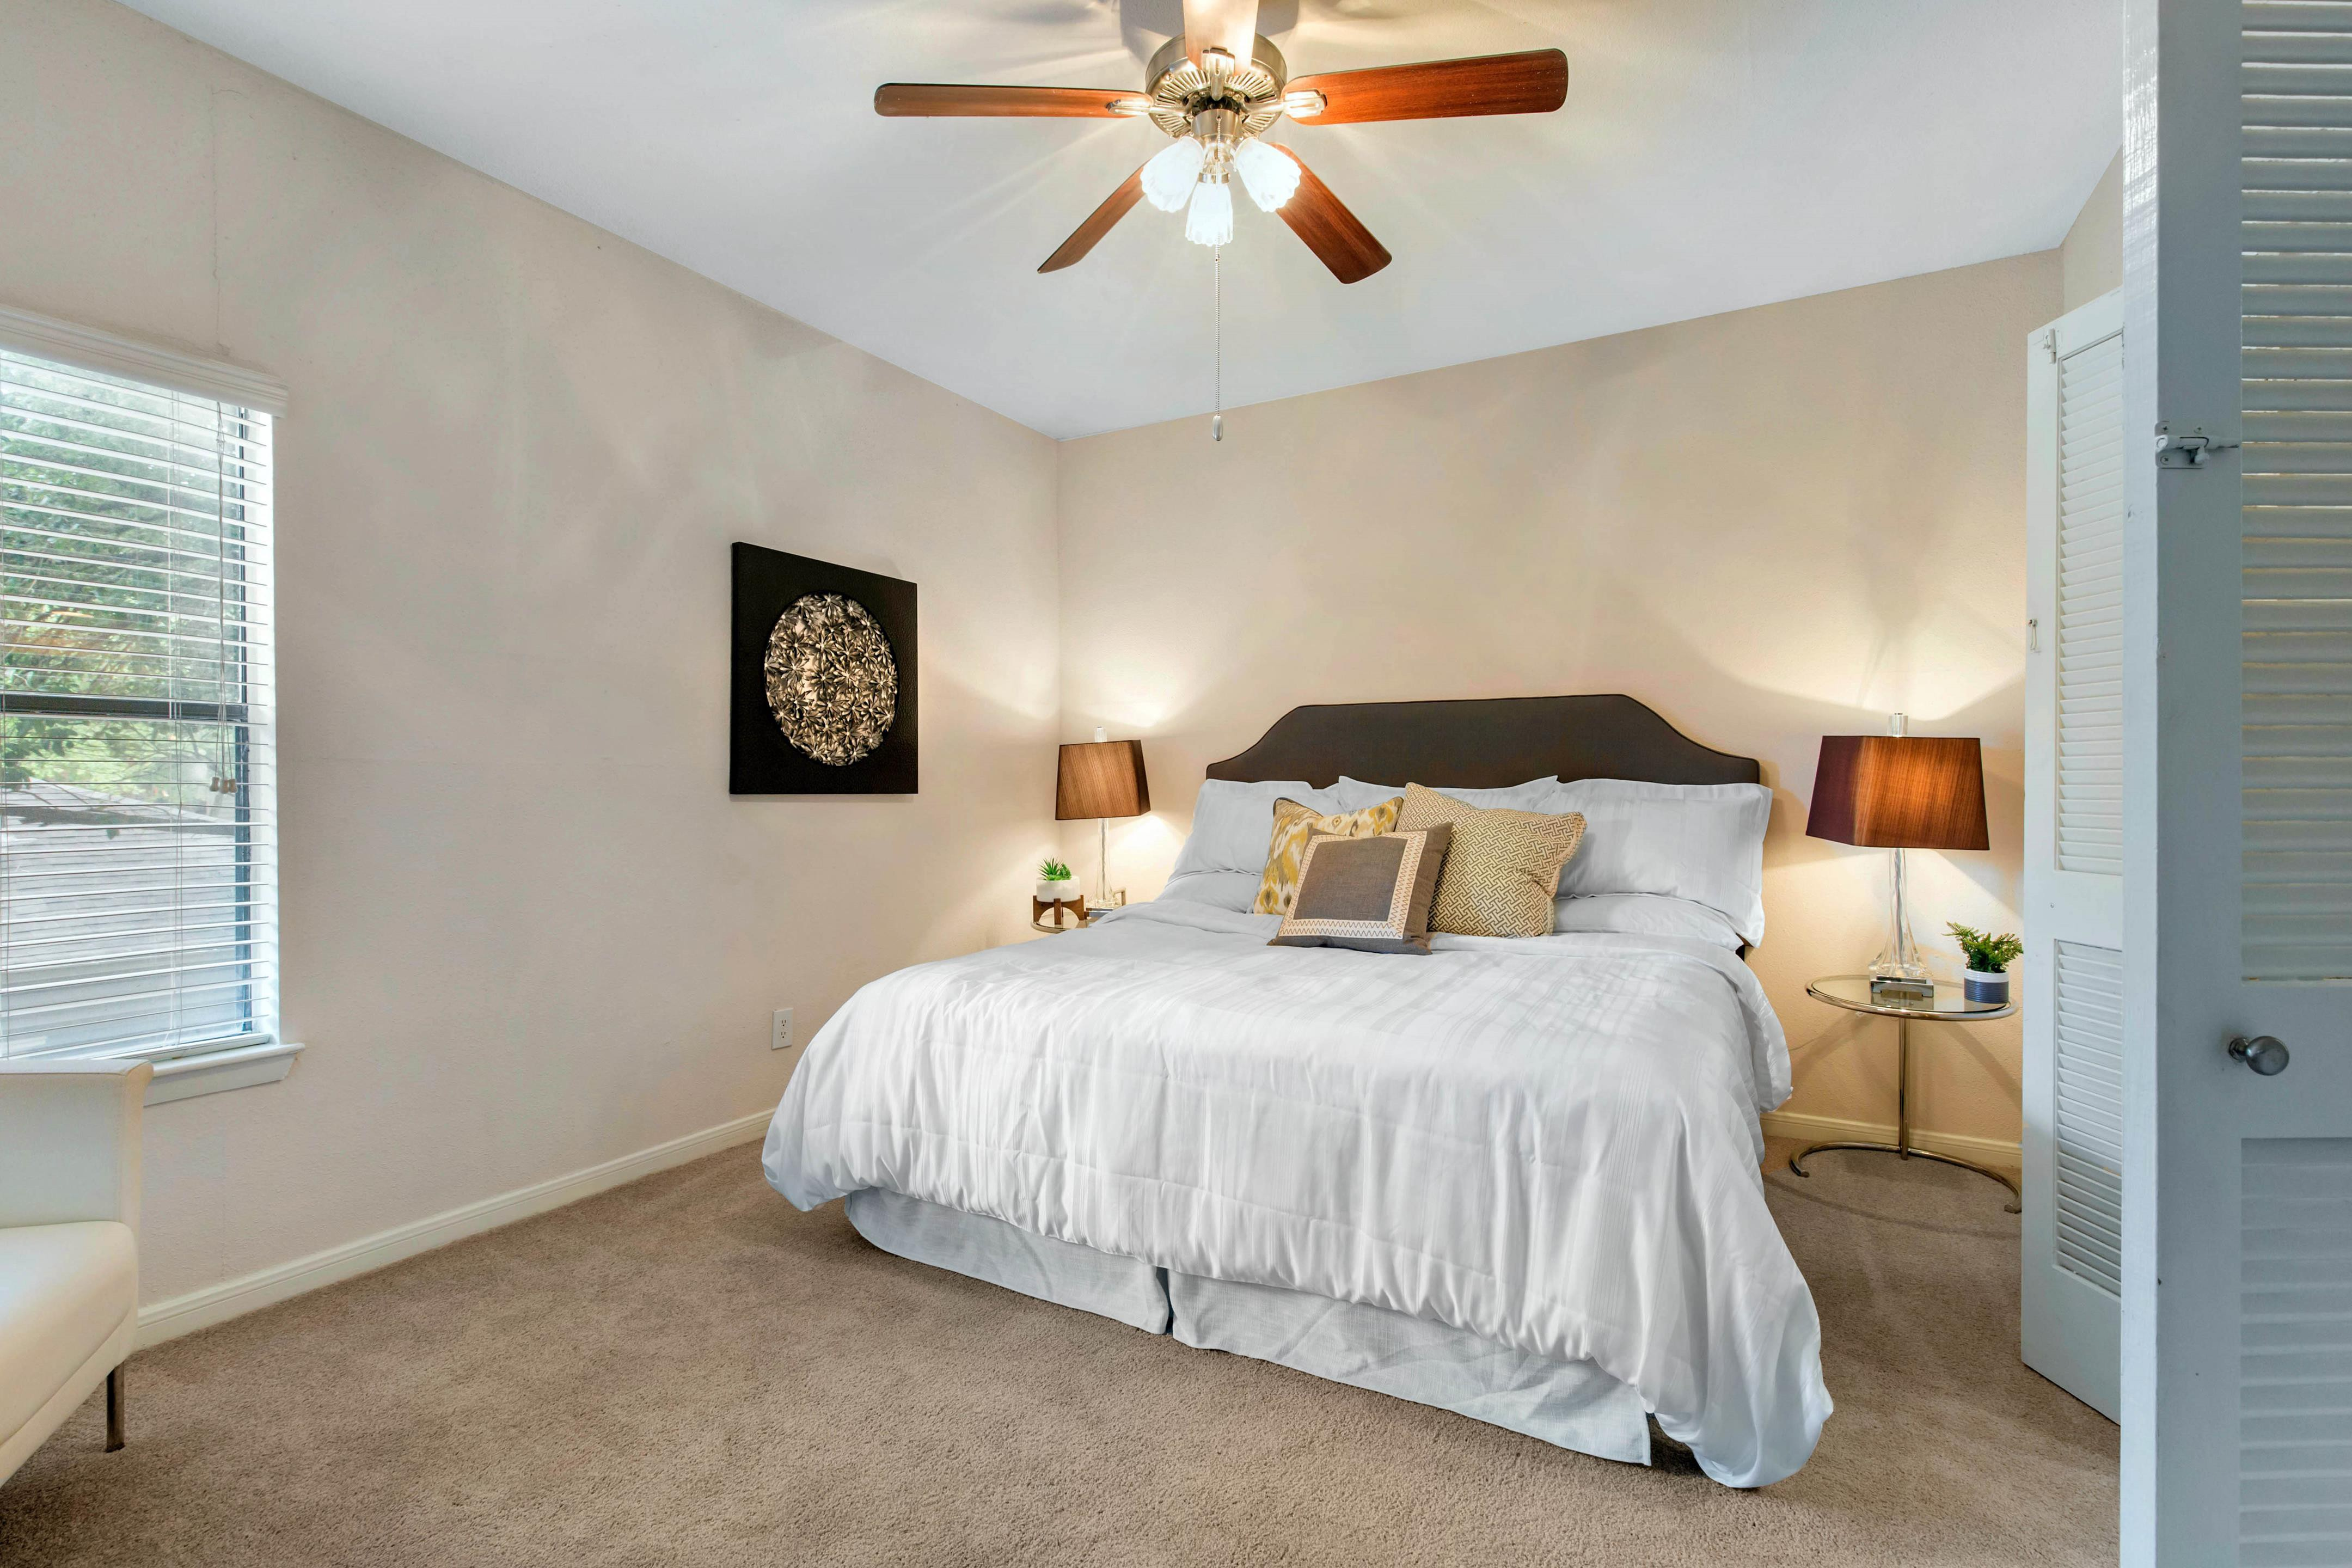 The Enclave at Cypress Park Apartments